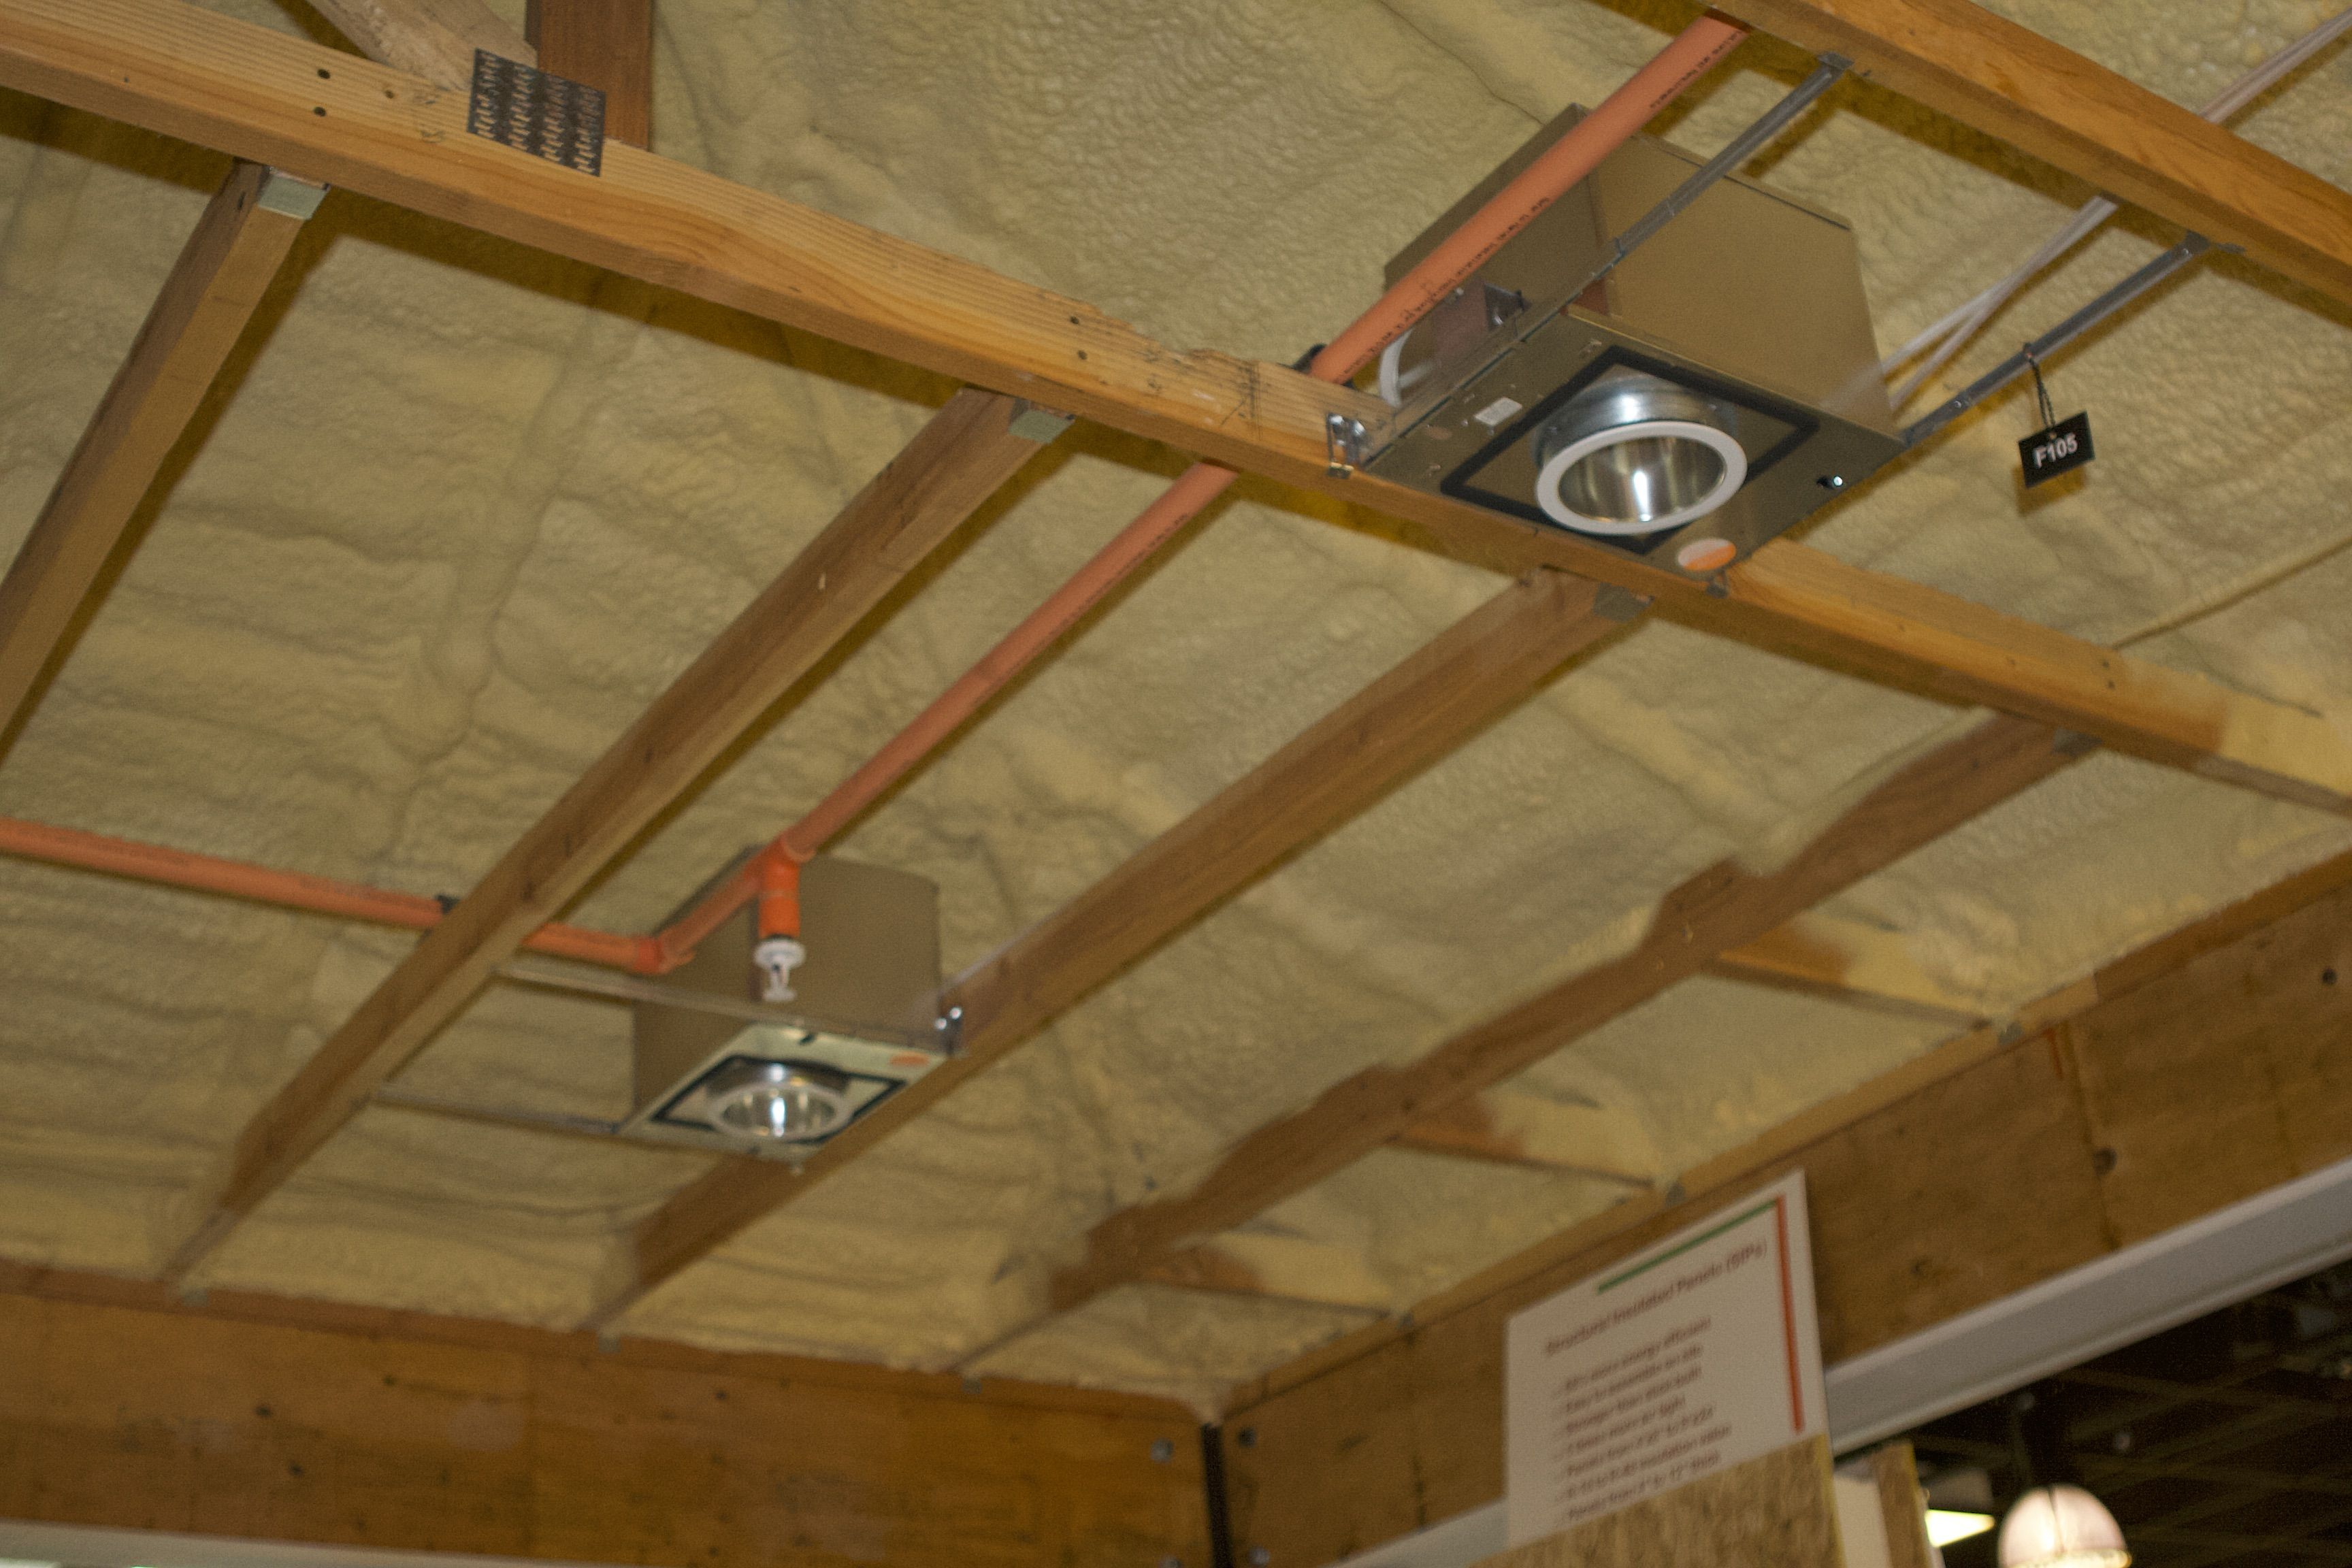 Recessed Lighting And Spray Foam Insulation From Icynene Spray Foam Insulation Roof Insulation